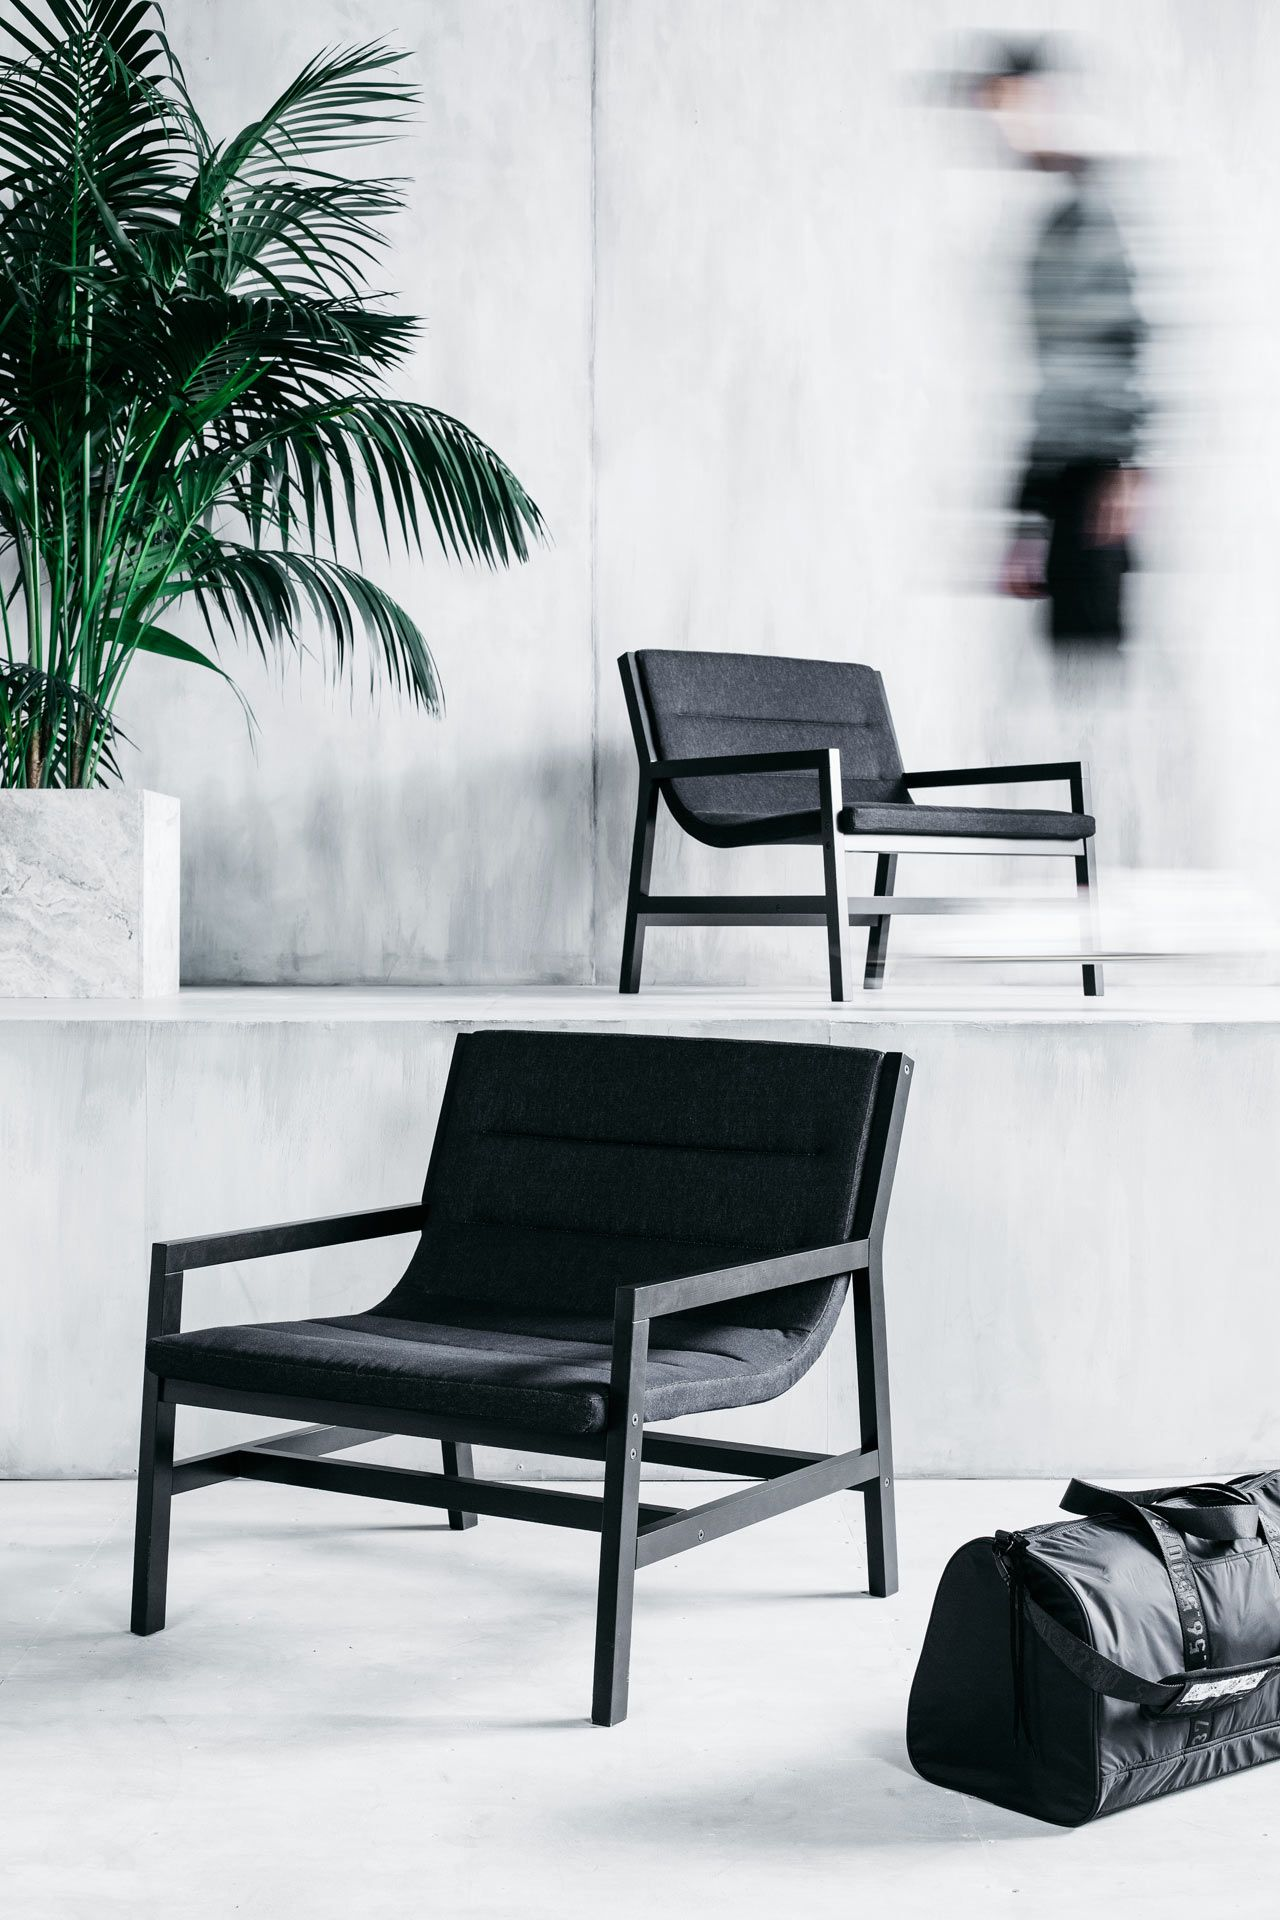 Ikea U S Launches Spanst An Unexpected Urban Lifestyle